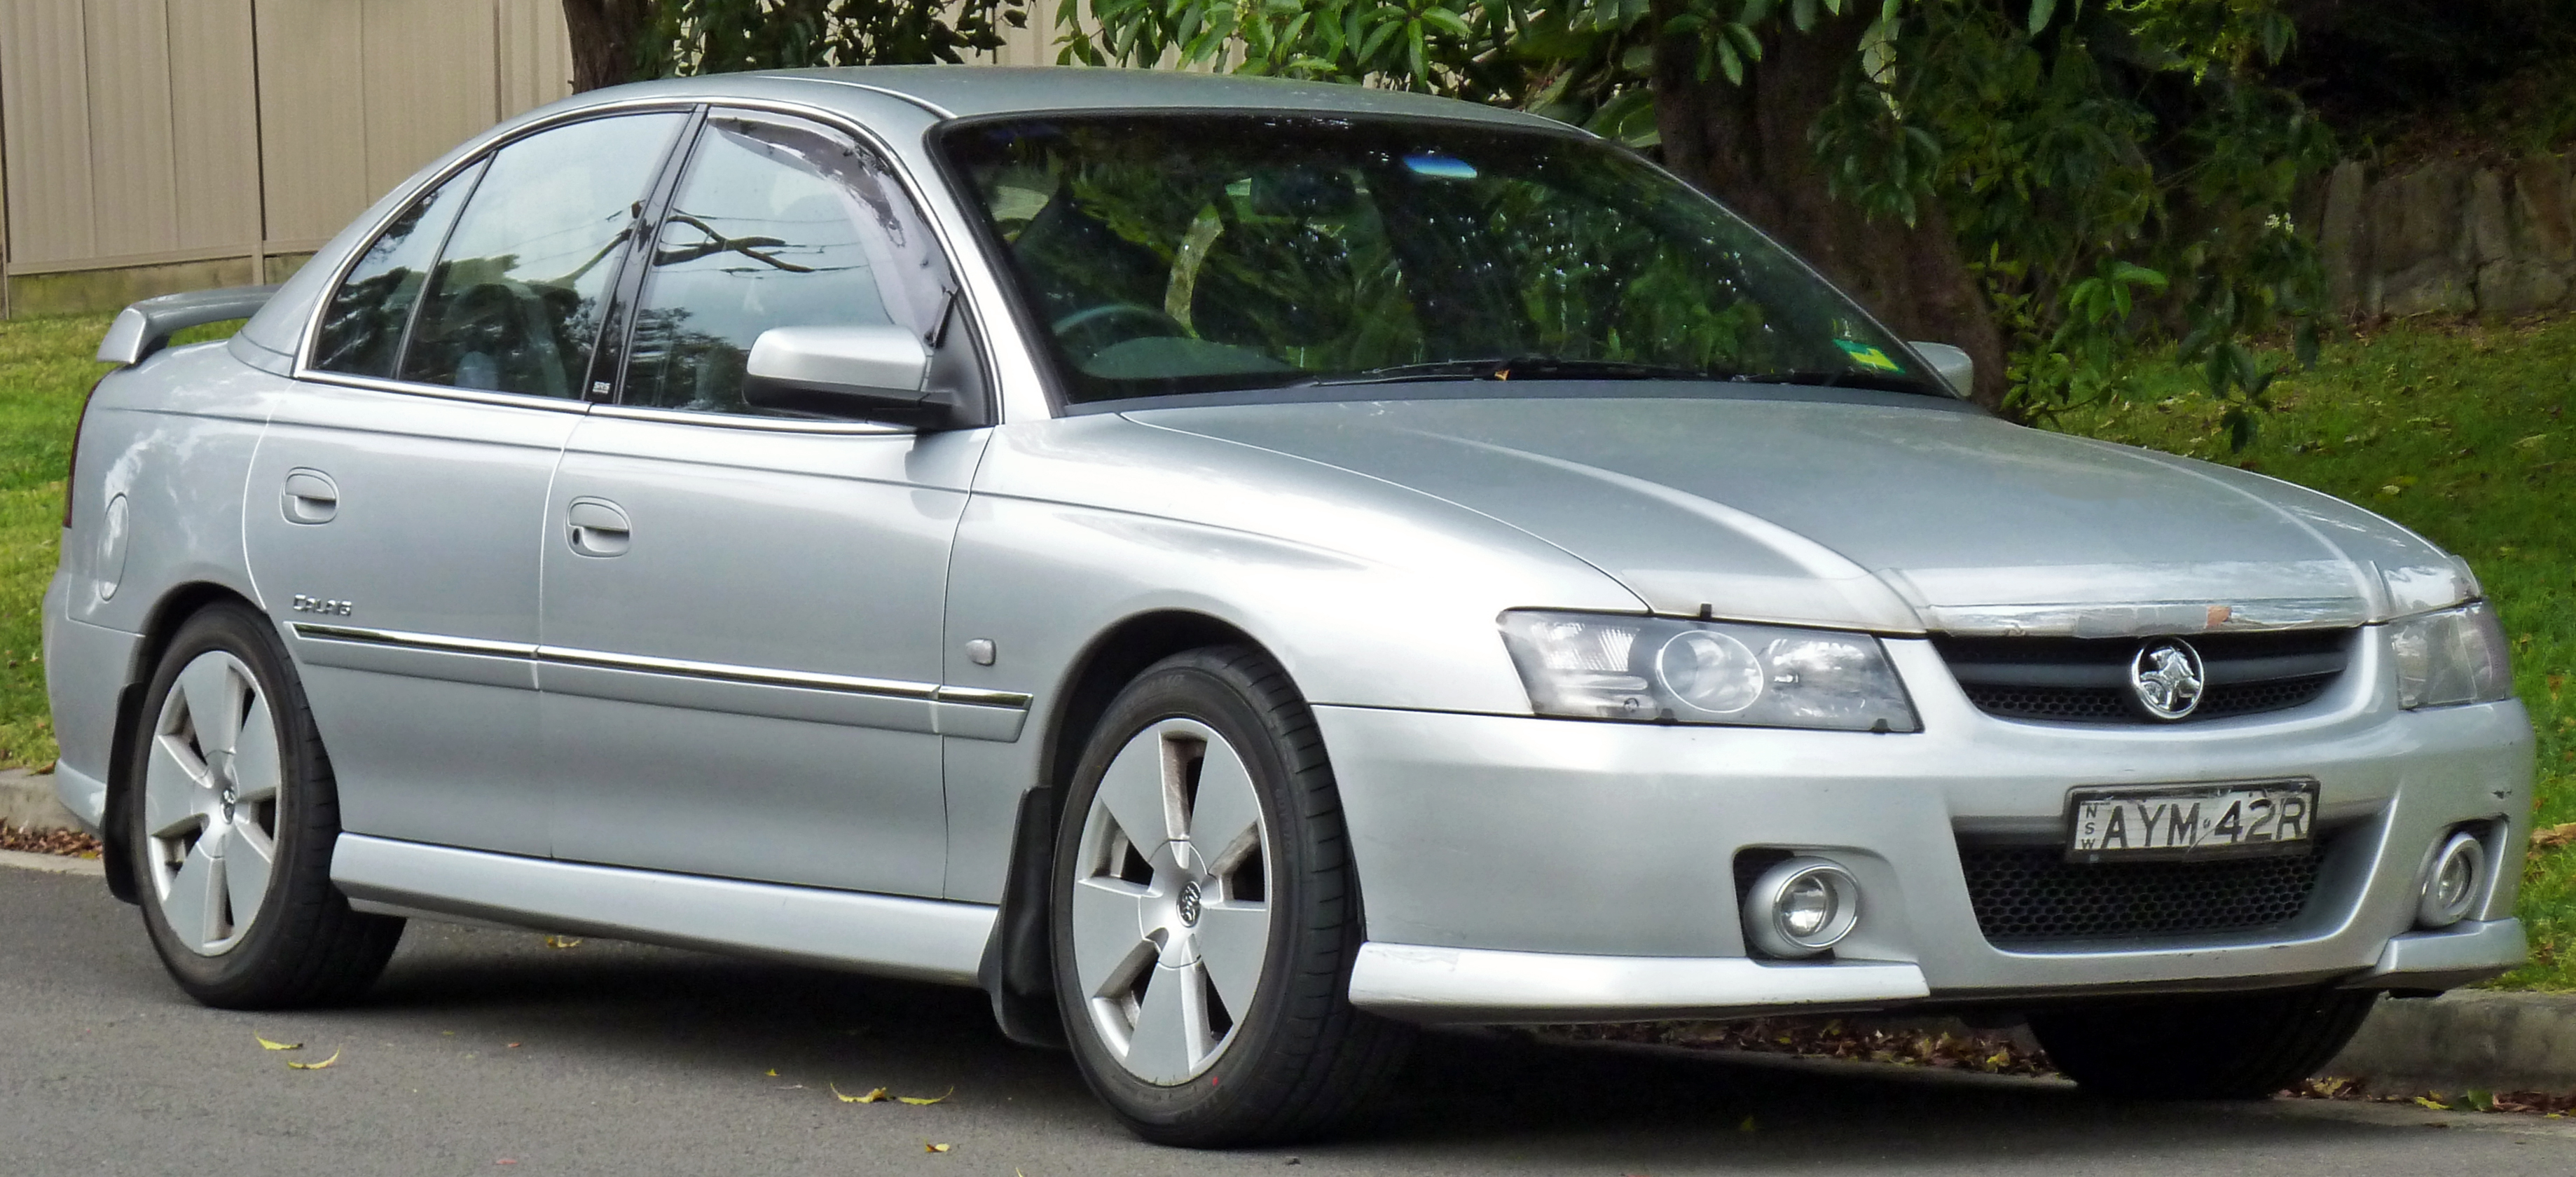 2006 holden ve commodore calais image collections hd cars wallpaper 2004 holden vz commodore calais image collections hd cars wallpaper holden vz commodore calais 2004 pictures vanachro Gallery